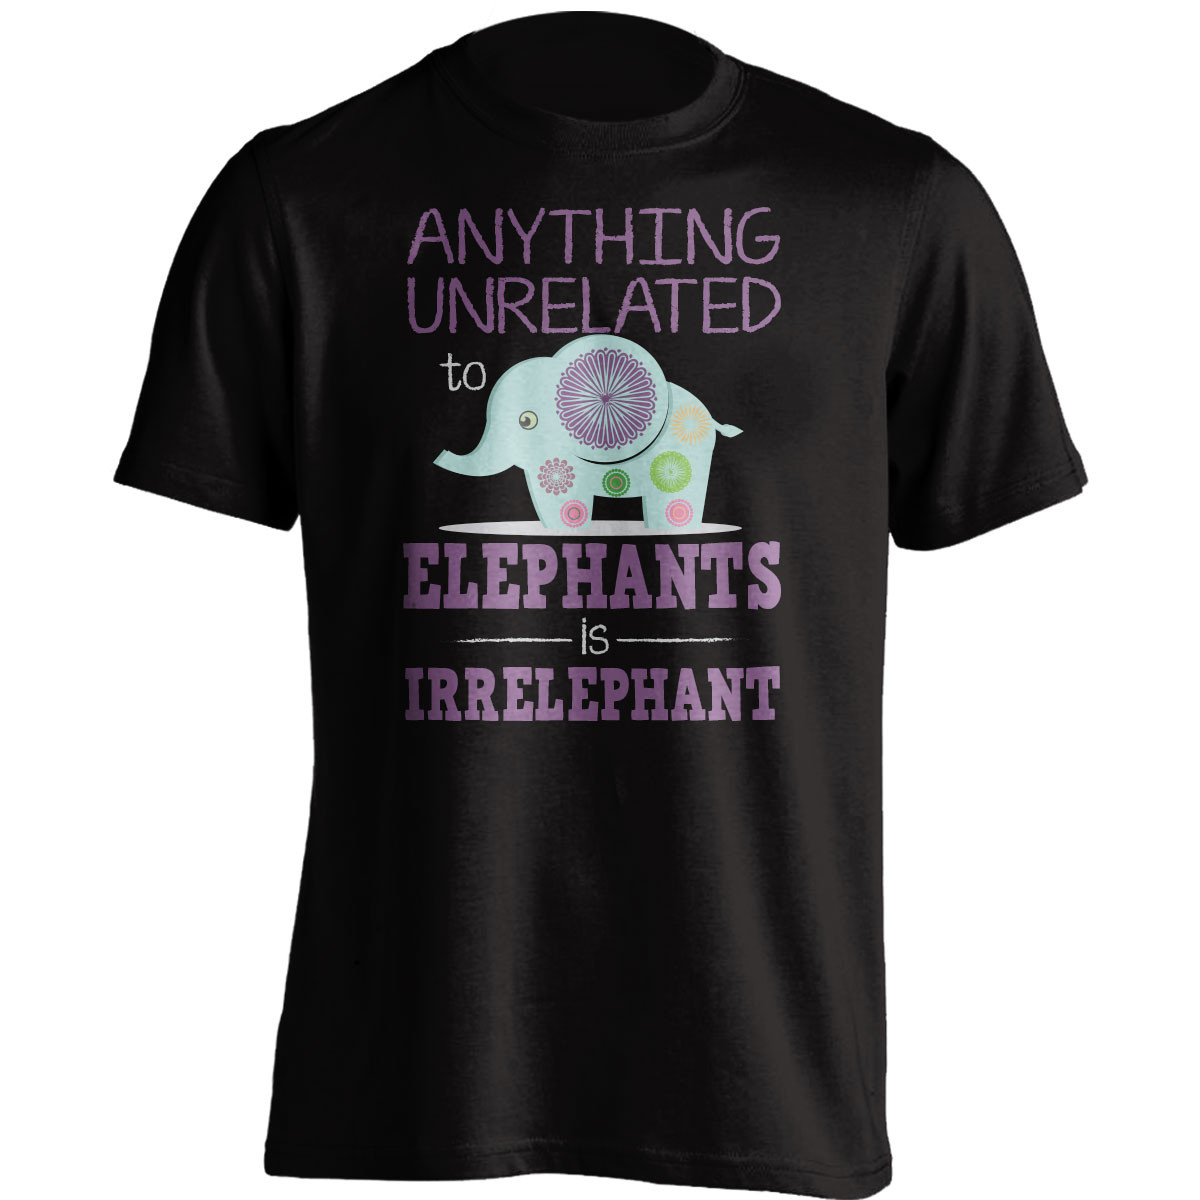 """Anything Unrelated To Elephants Is Irrelephant"" T-Shirt"